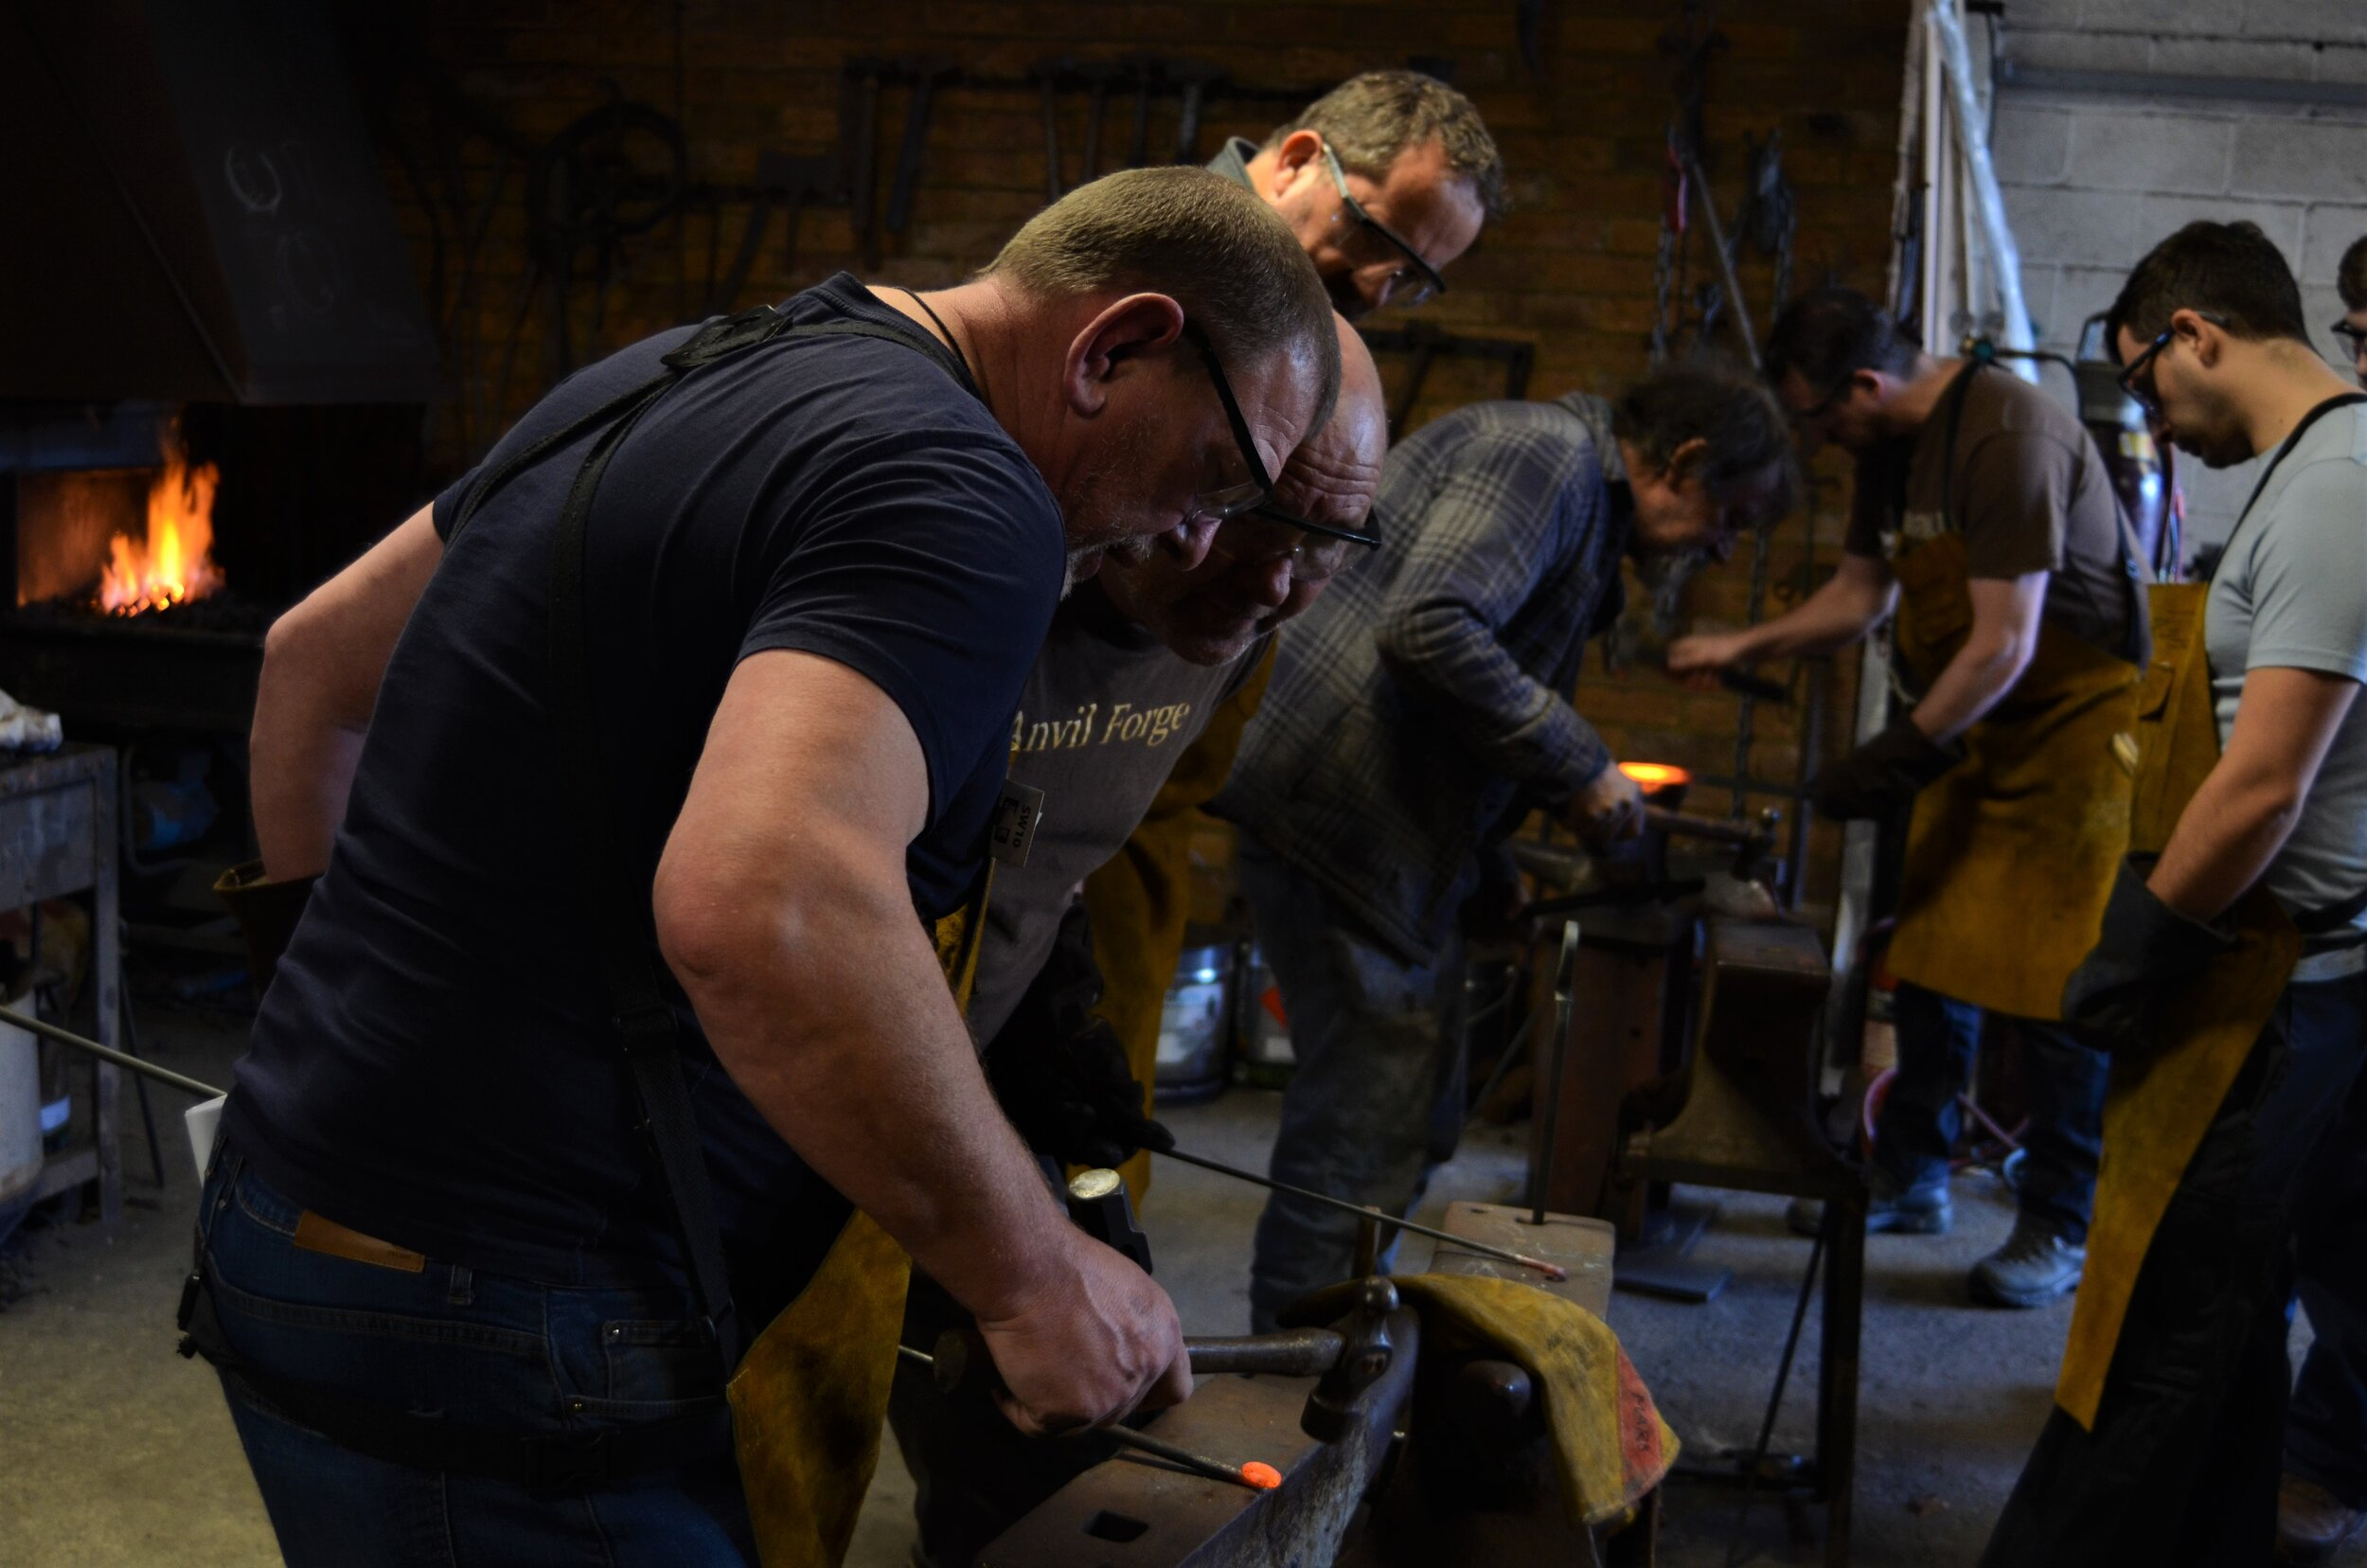 Courses - We provide a range of different classes to accommodate some of the many different disciplines within the metalworking and blacksmithing spectrum.